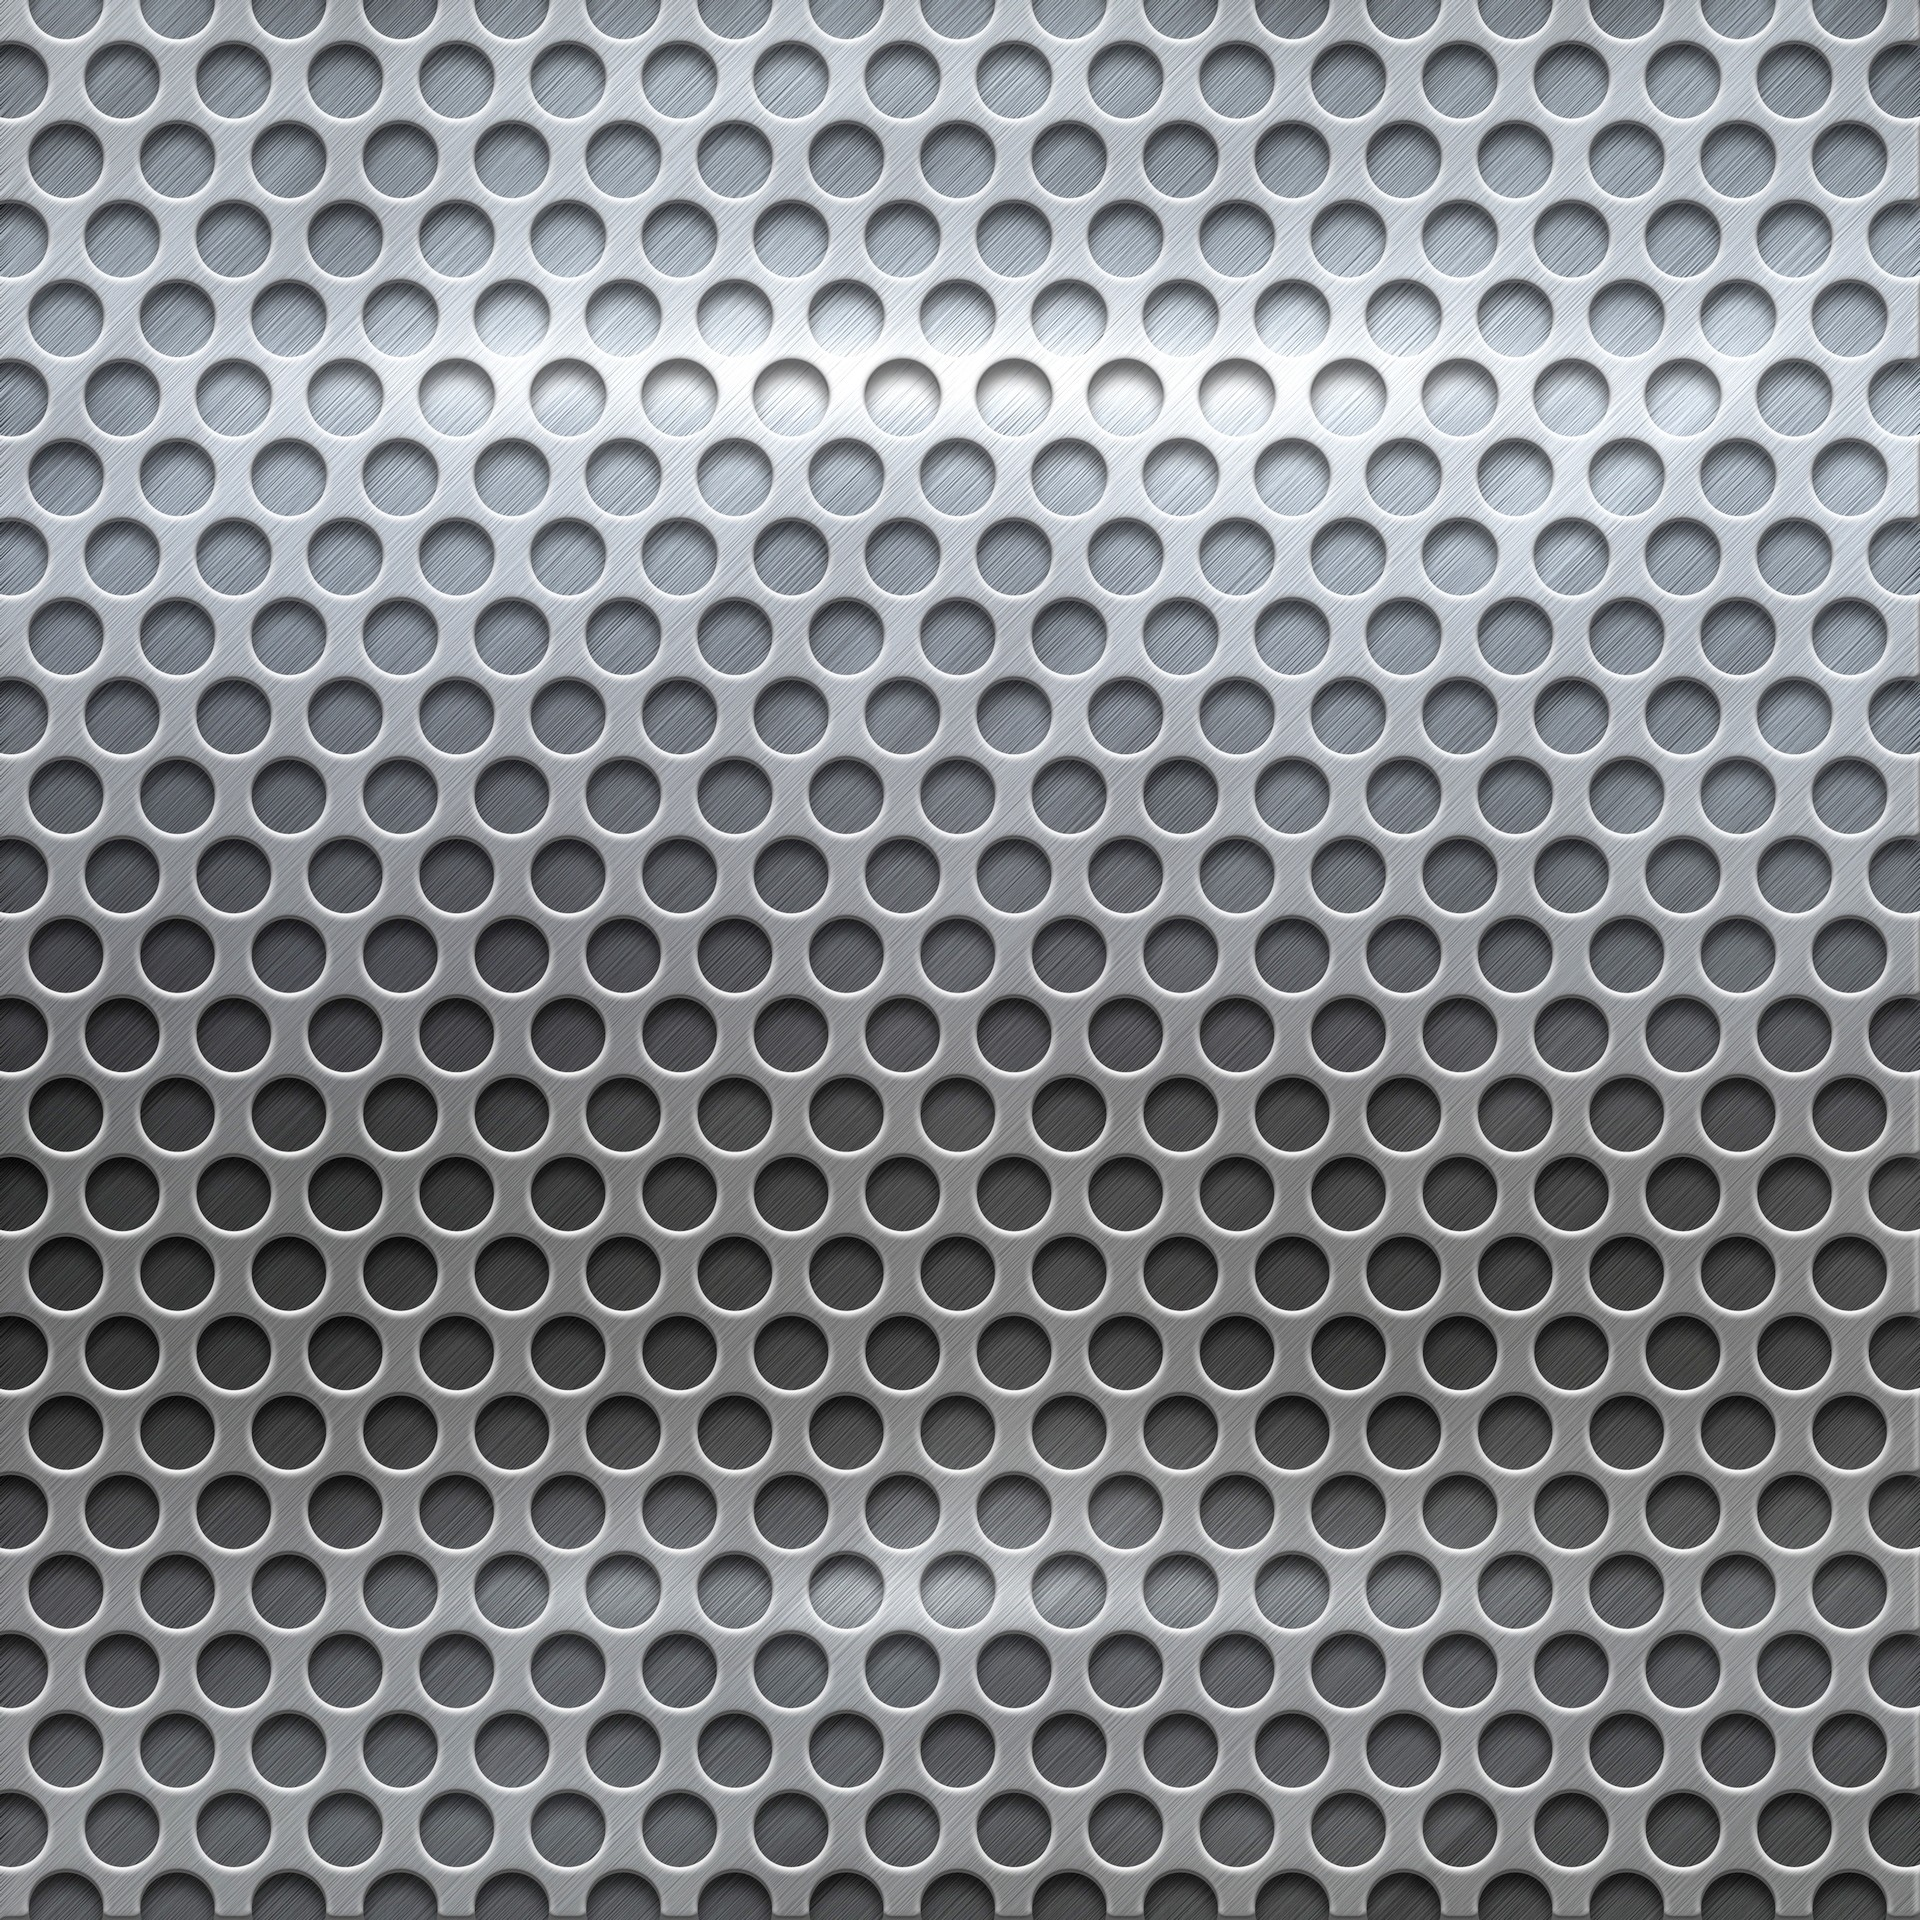 Silver images Silver grid HD wallpaper and background photos